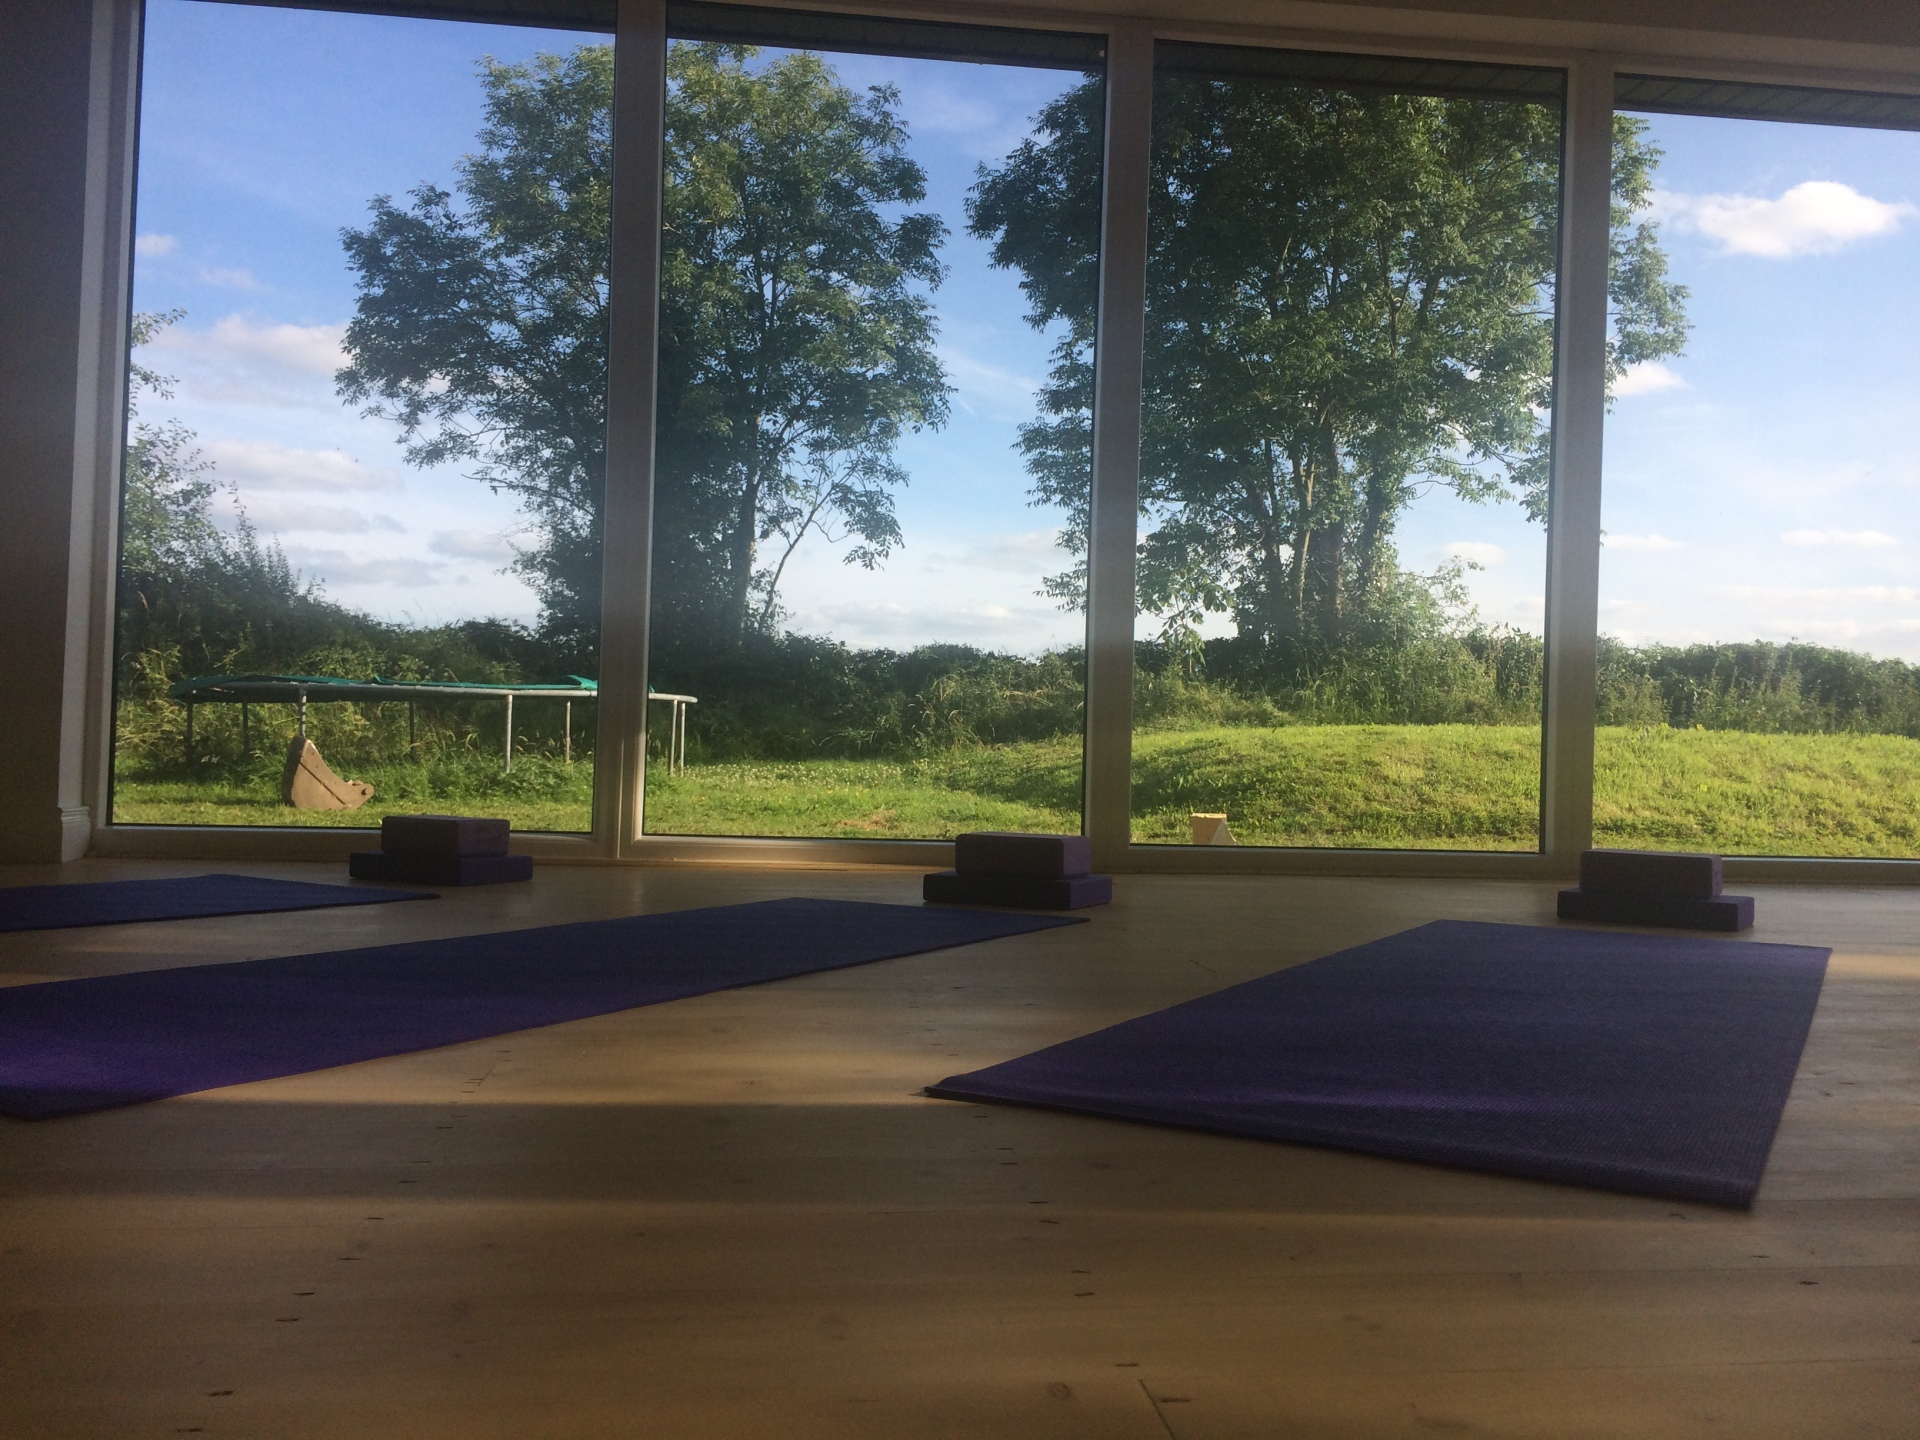 Aruna Yoga Rathcoffey Views